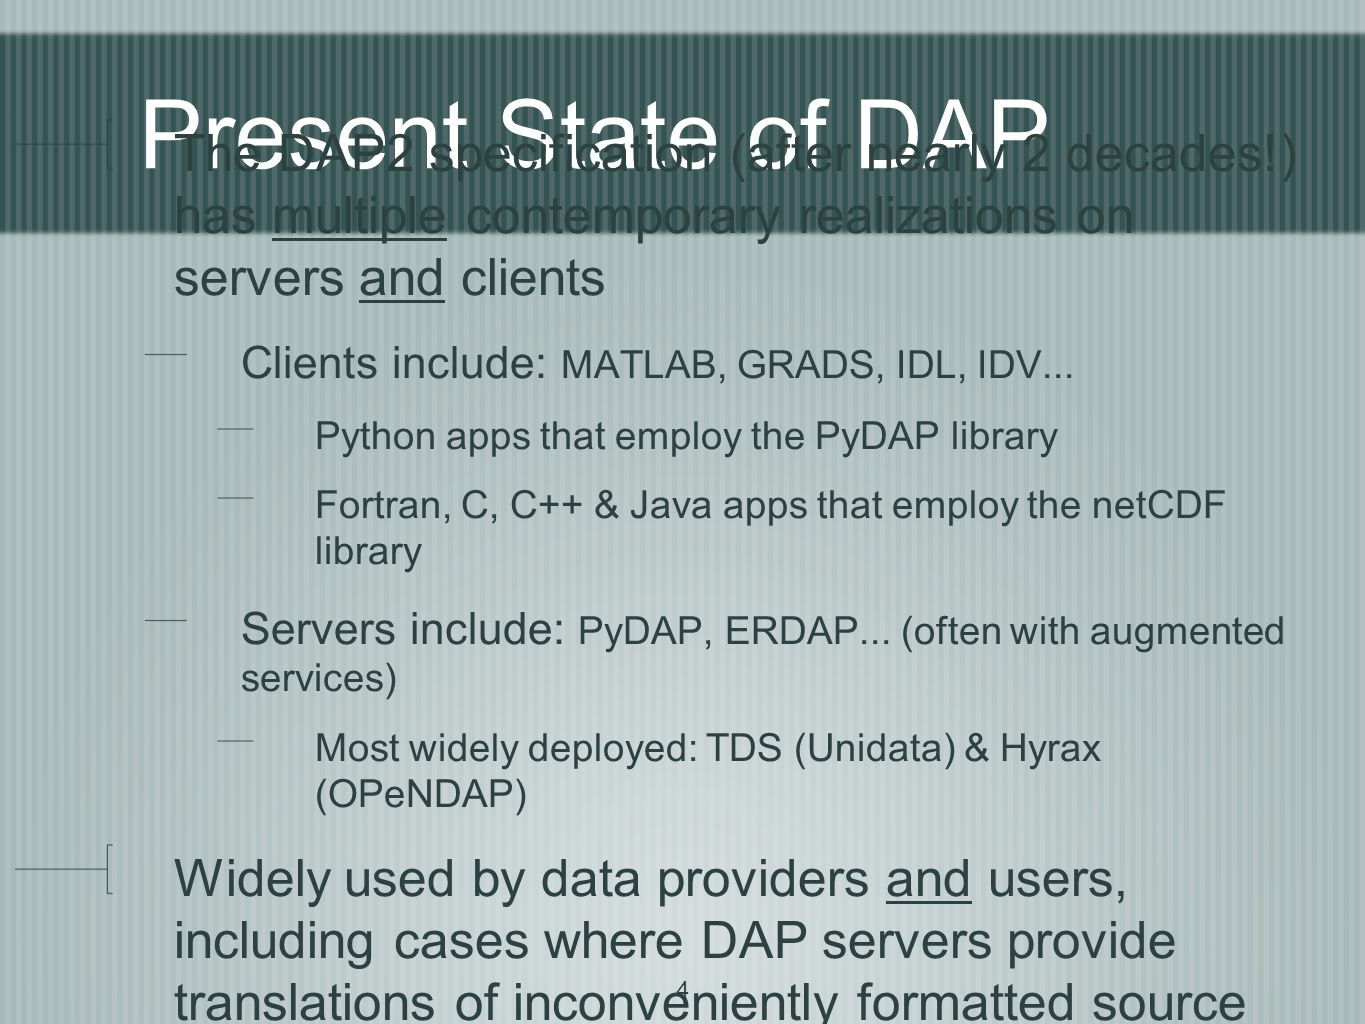 4 Present State of DAP The DAP2 specification (after nearly 2 decades!) has multiple contemporary realizations on servers and clients Clients include: MATLAB, GRADS, IDL, IDV...